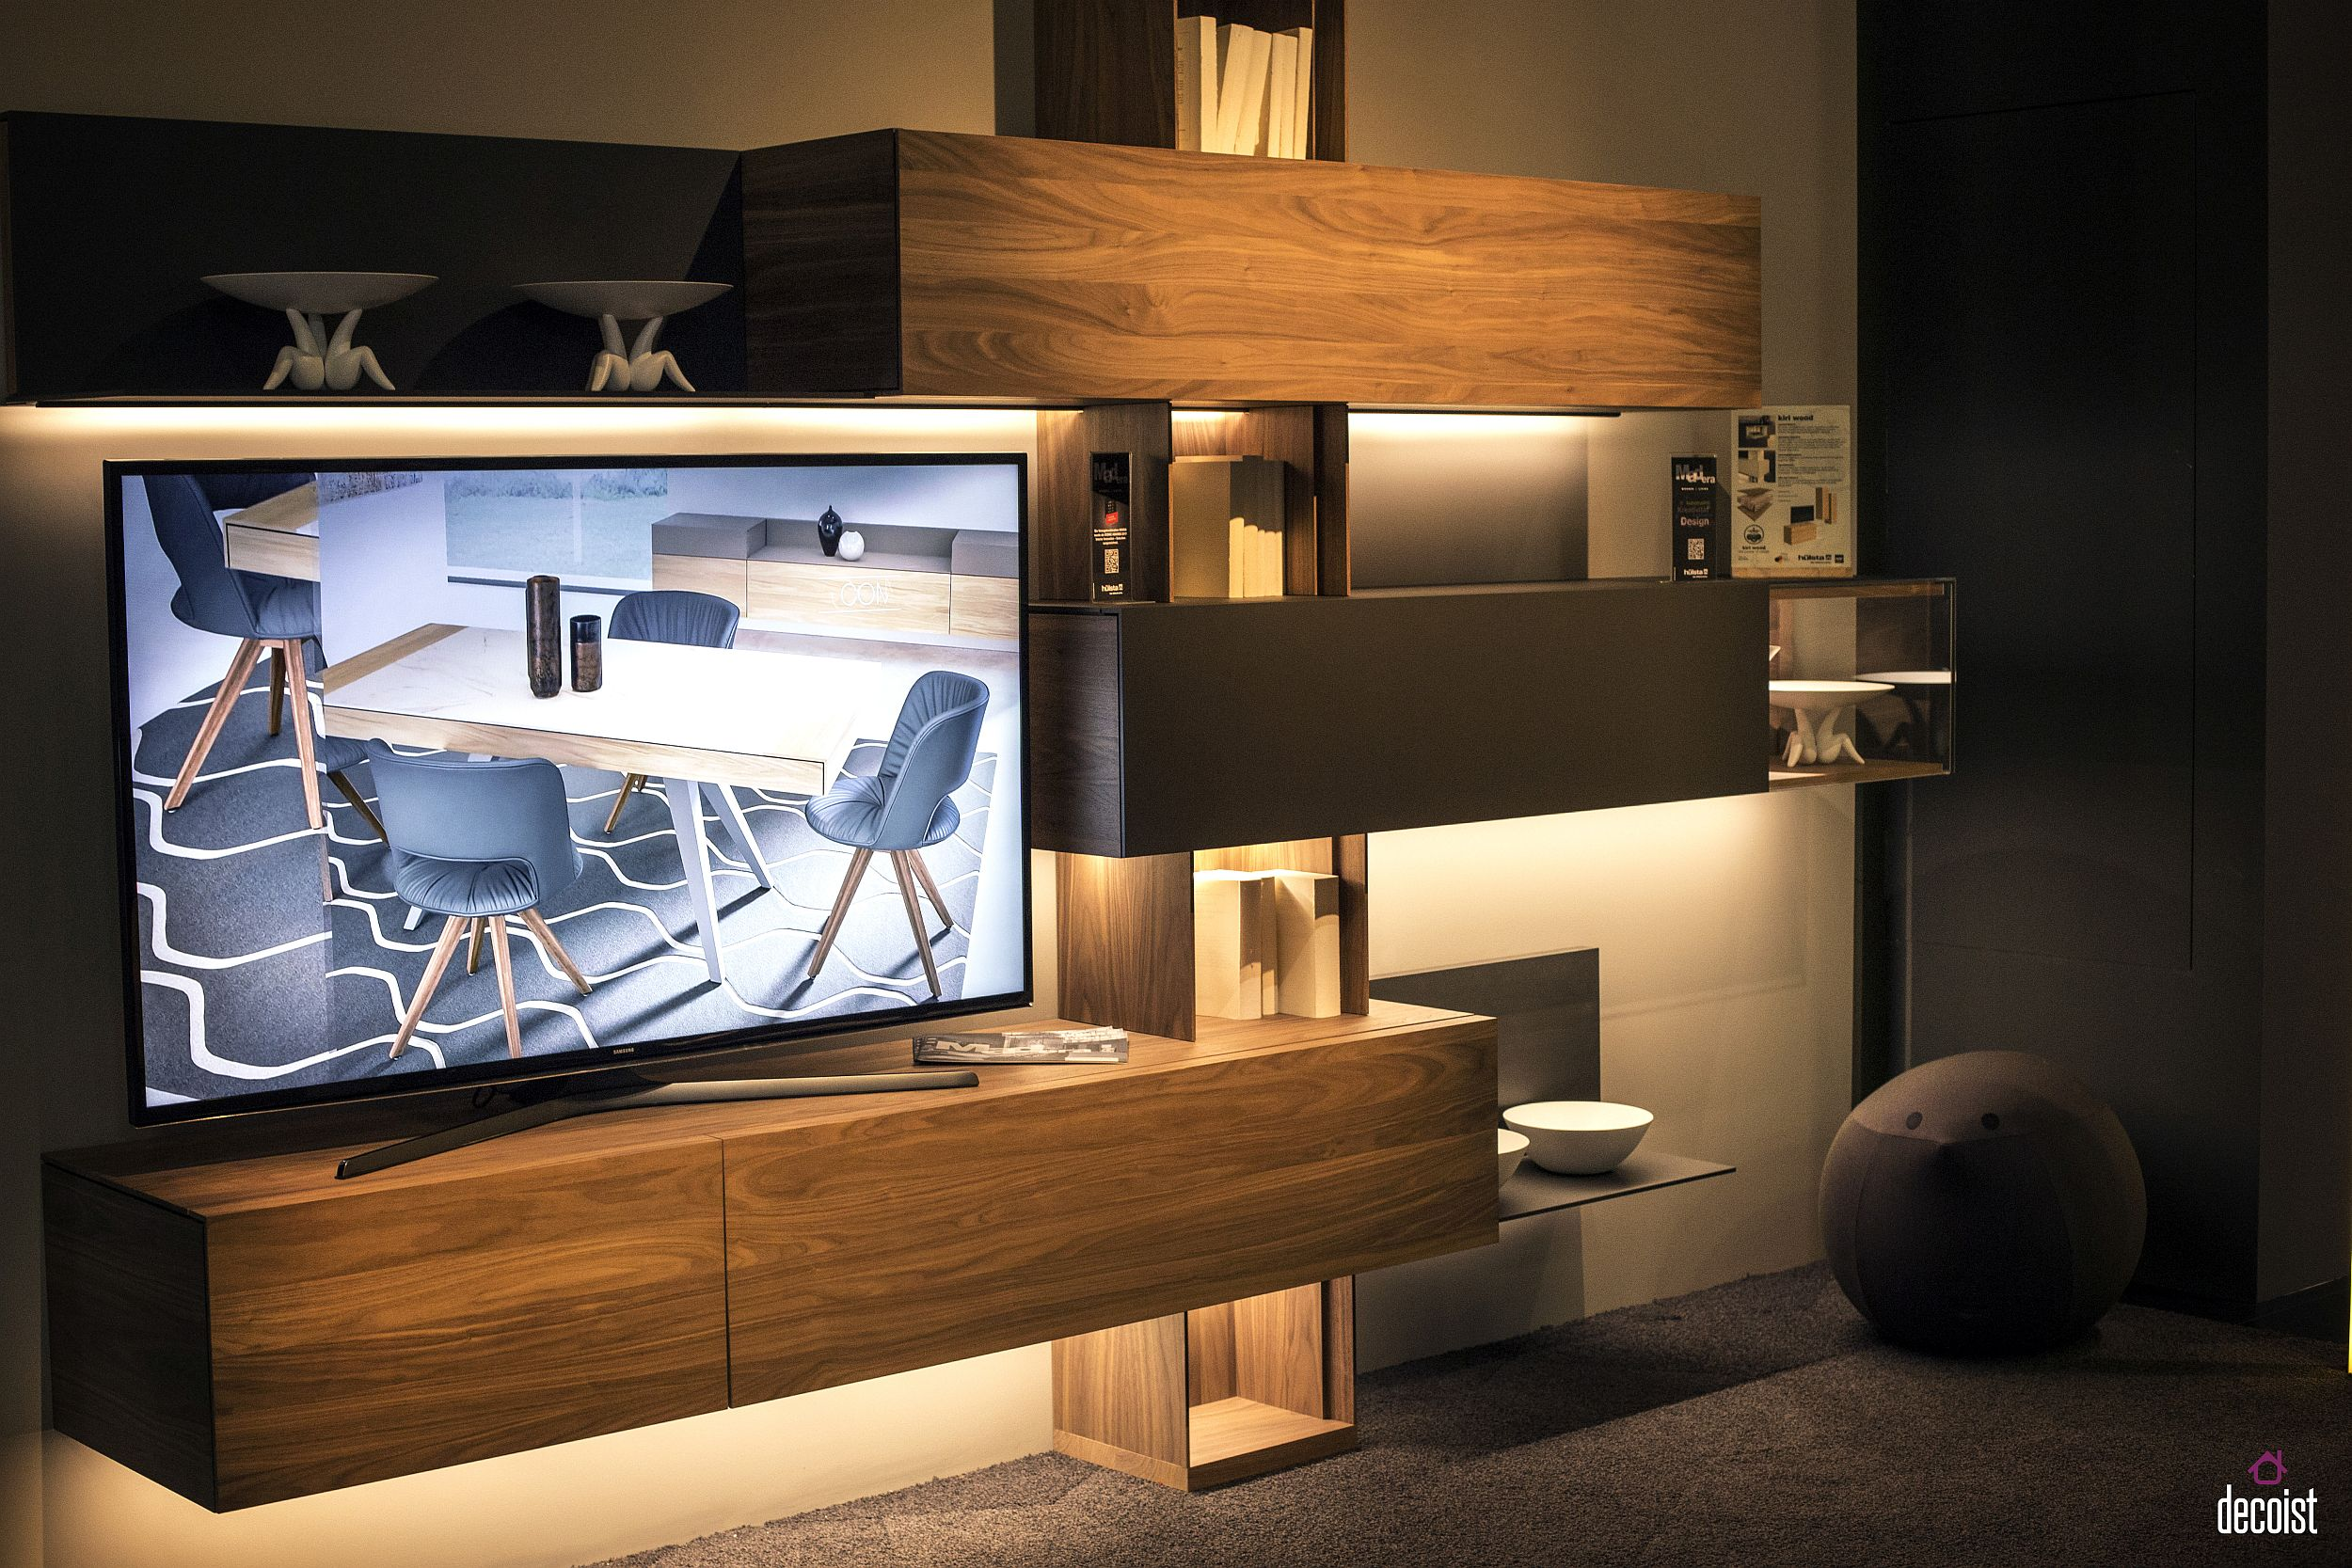 Floating wooden cabinets with LED under-cabinet lighting make for scintillating TV stands